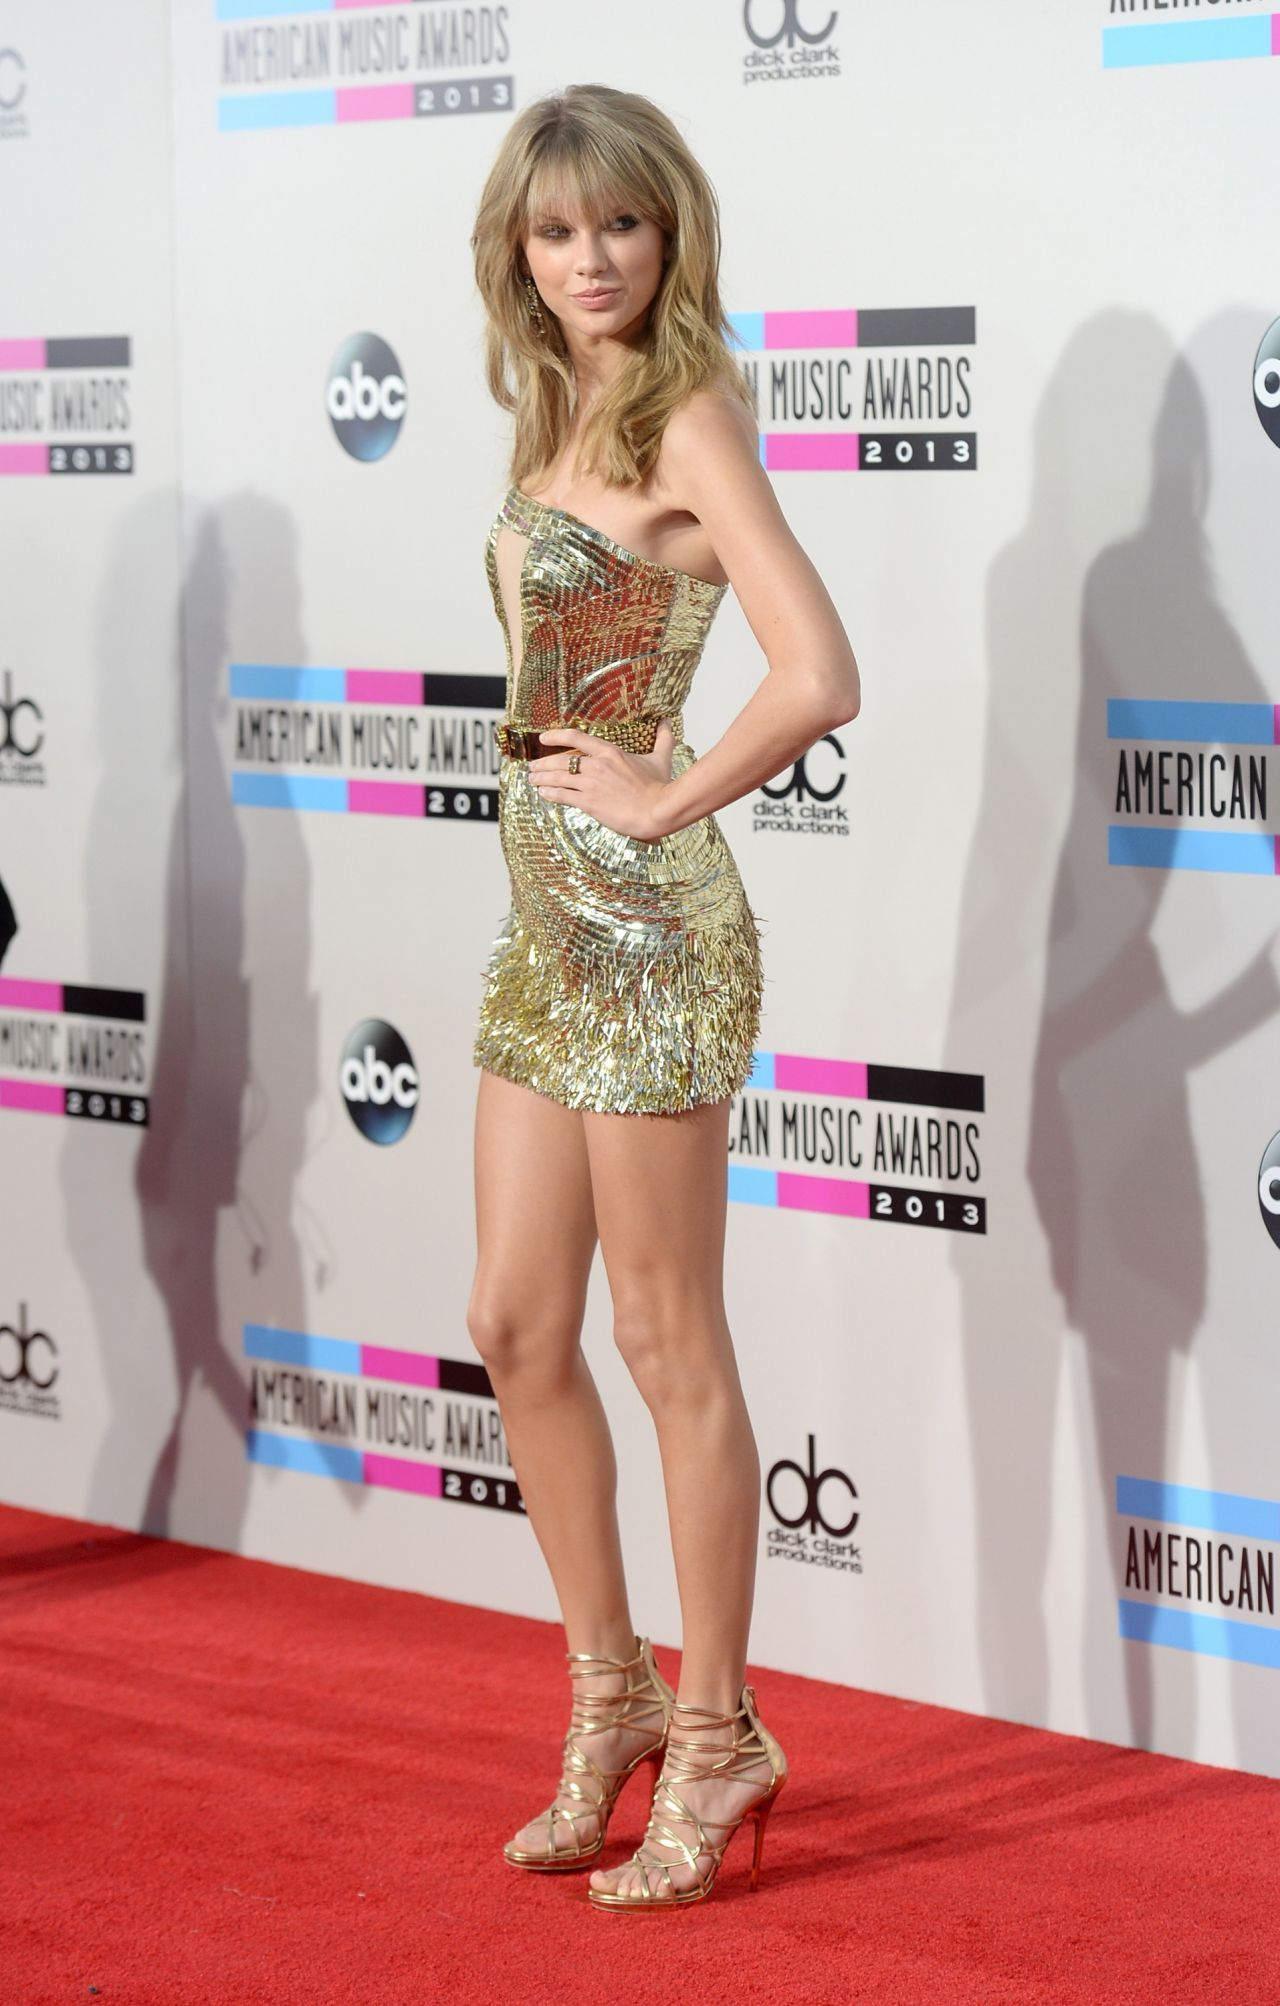 Taylor Swift Looks Hot On Red Carpet 2013 American Music Awards In Los Angeles Taylor Swift Legs Taylor Swift Hot Taylor Swift Style